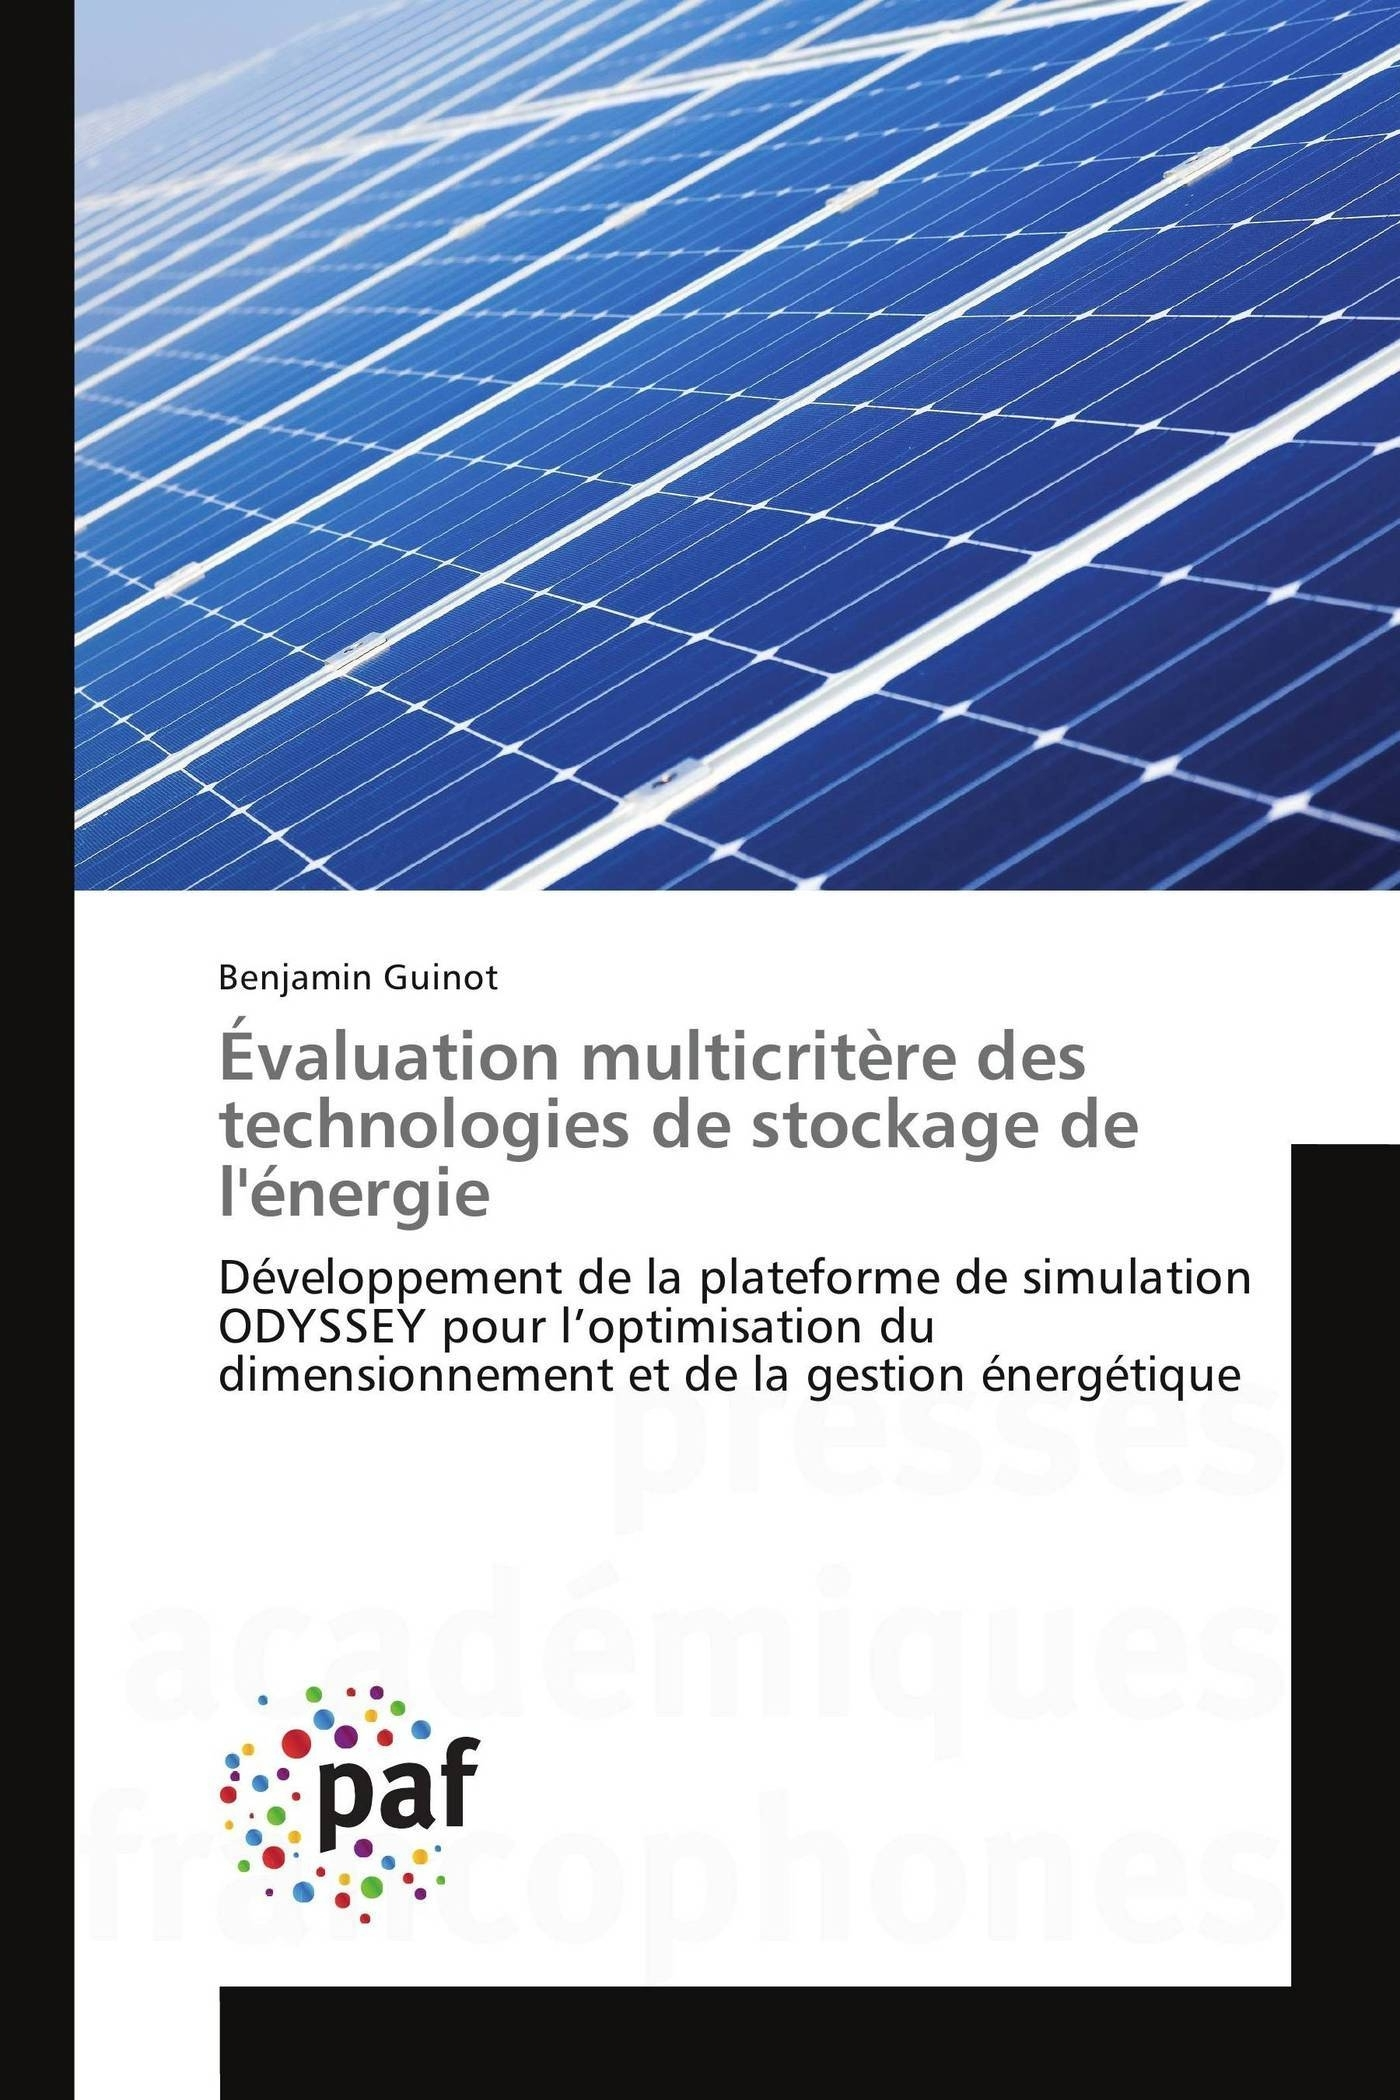 EVALUATION MULTICRITERE DES TECHNOLOGIES DE STOCKAGE DE L'ENERGIE